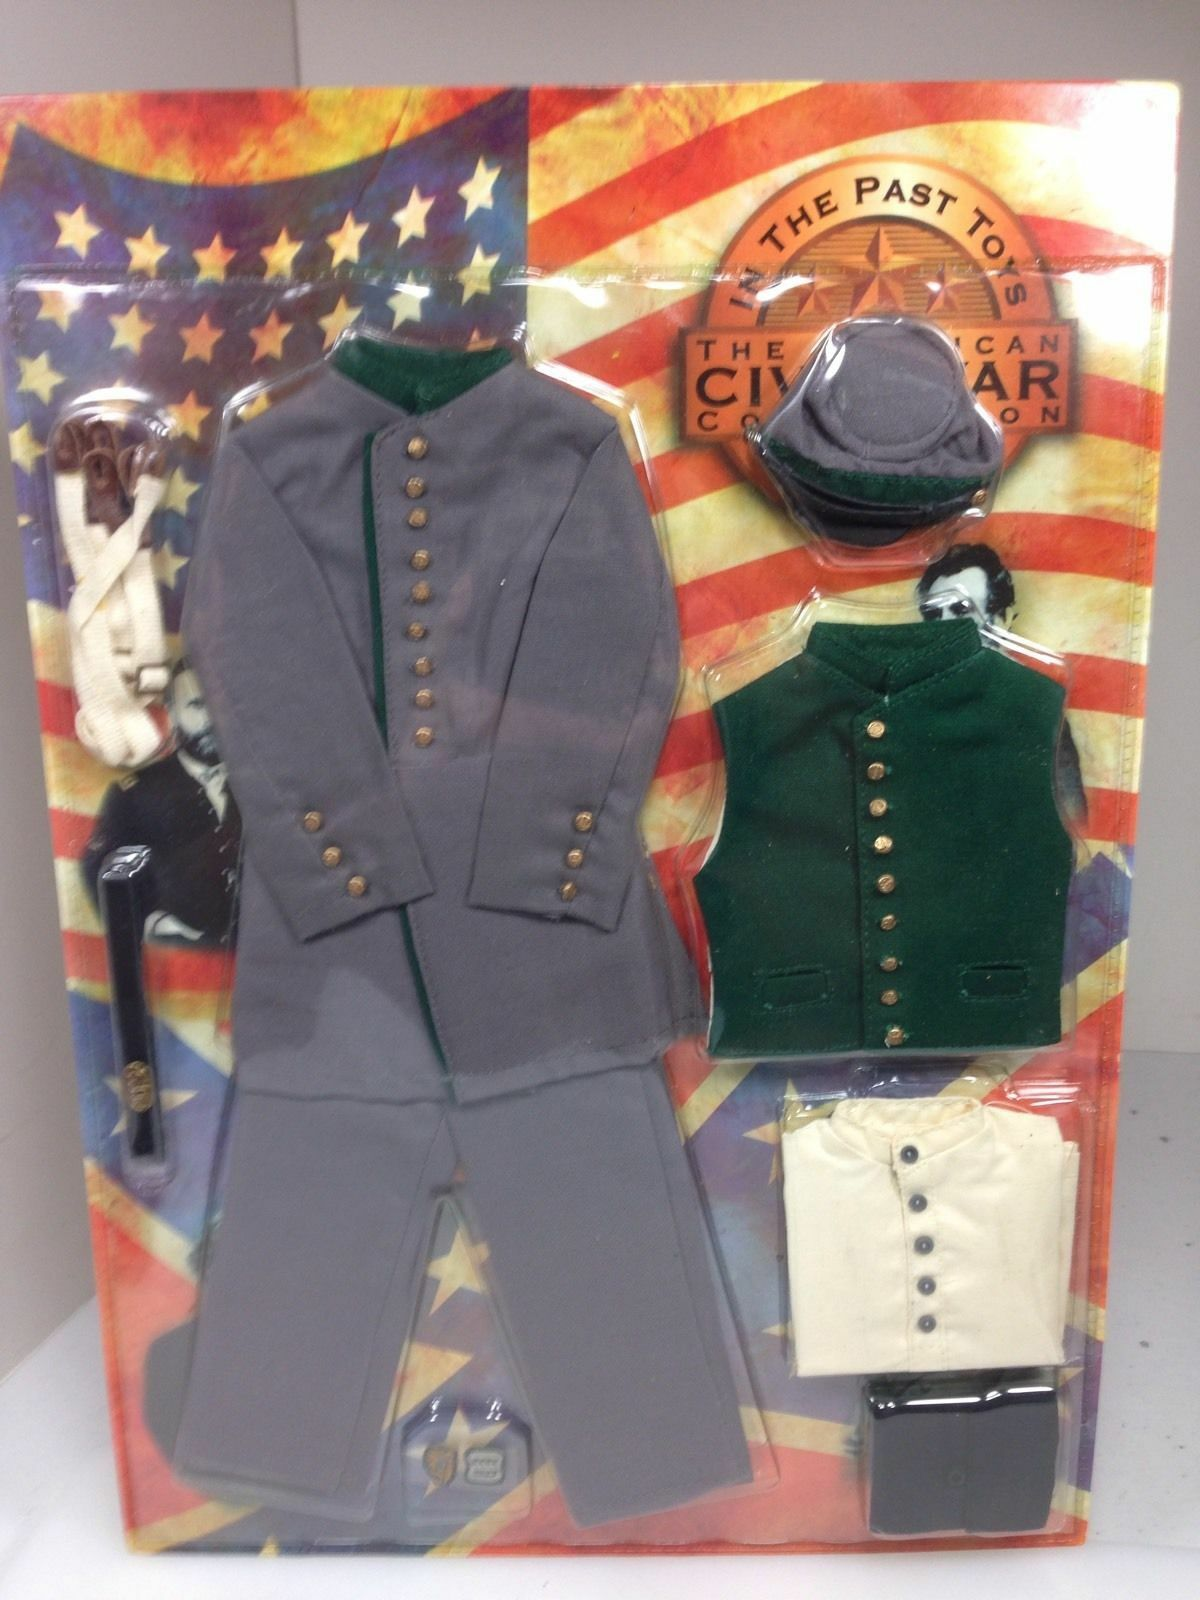 1 6 Scale Highly Detailed In the Past Toys Civil War Uniform   weapons Set LOT